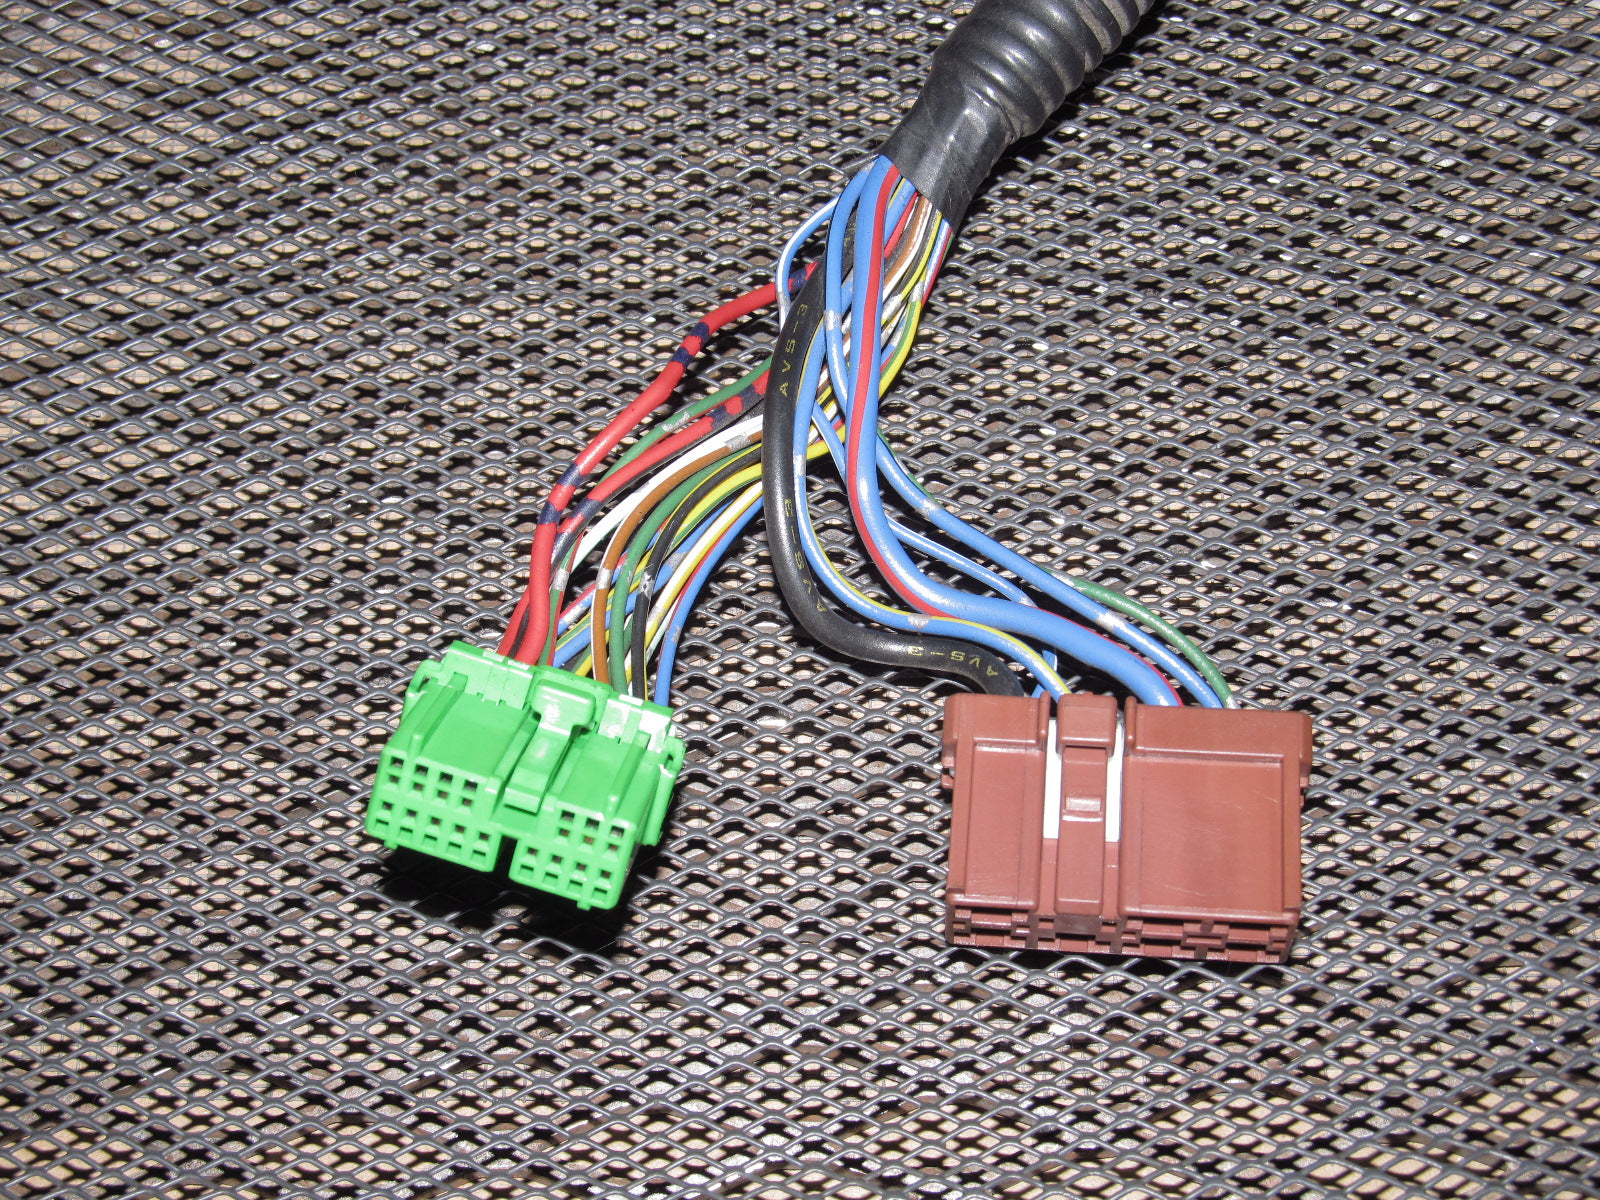 heater control wiring harness for 94 accord 92 93 94 95 96 honda prelude oem climate control pigtail harness  92 93 94 95 96 honda prelude oem